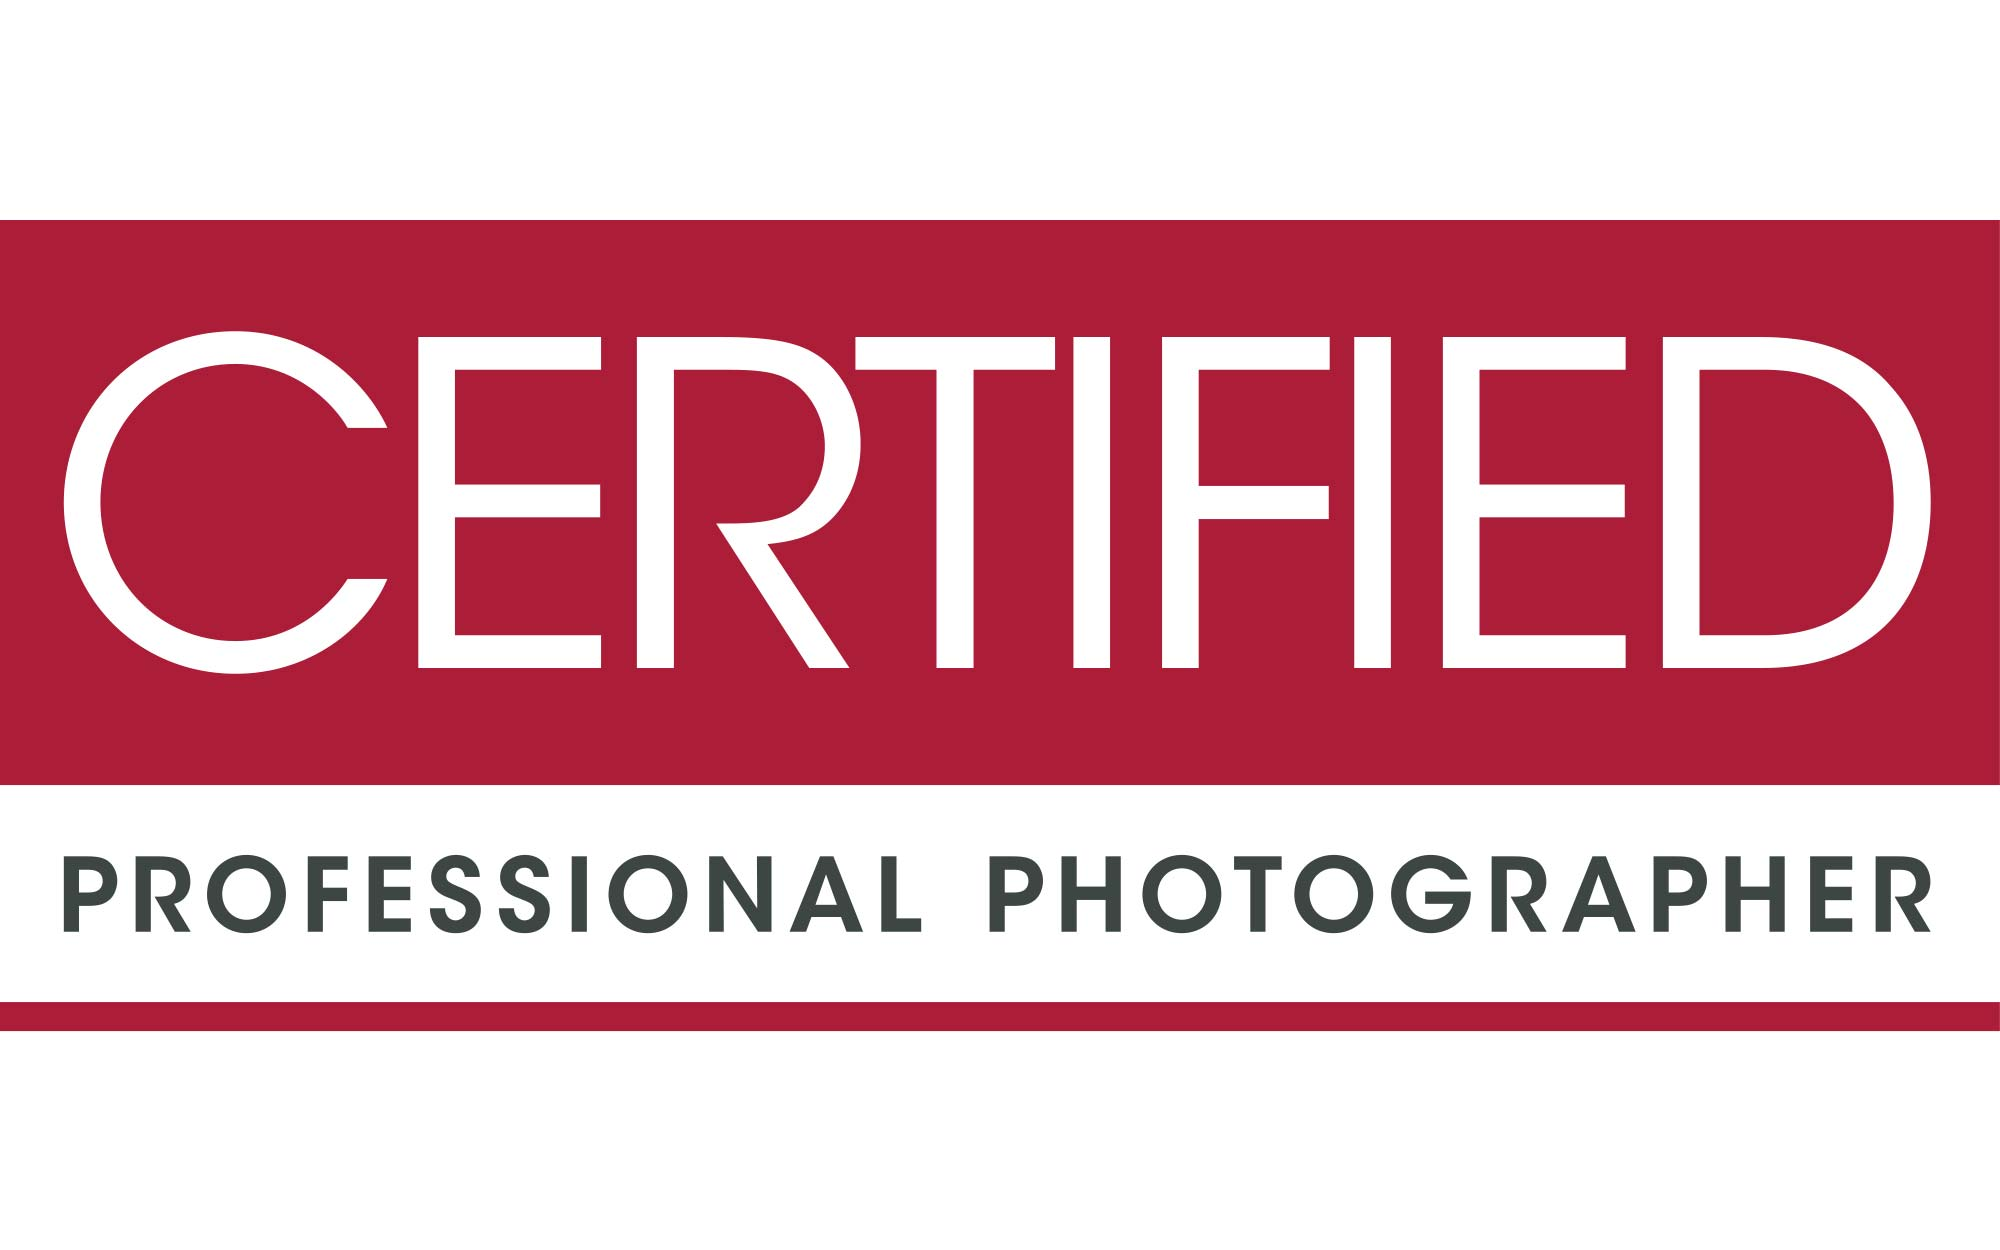 Certified Professional Photographer Logo for Blog